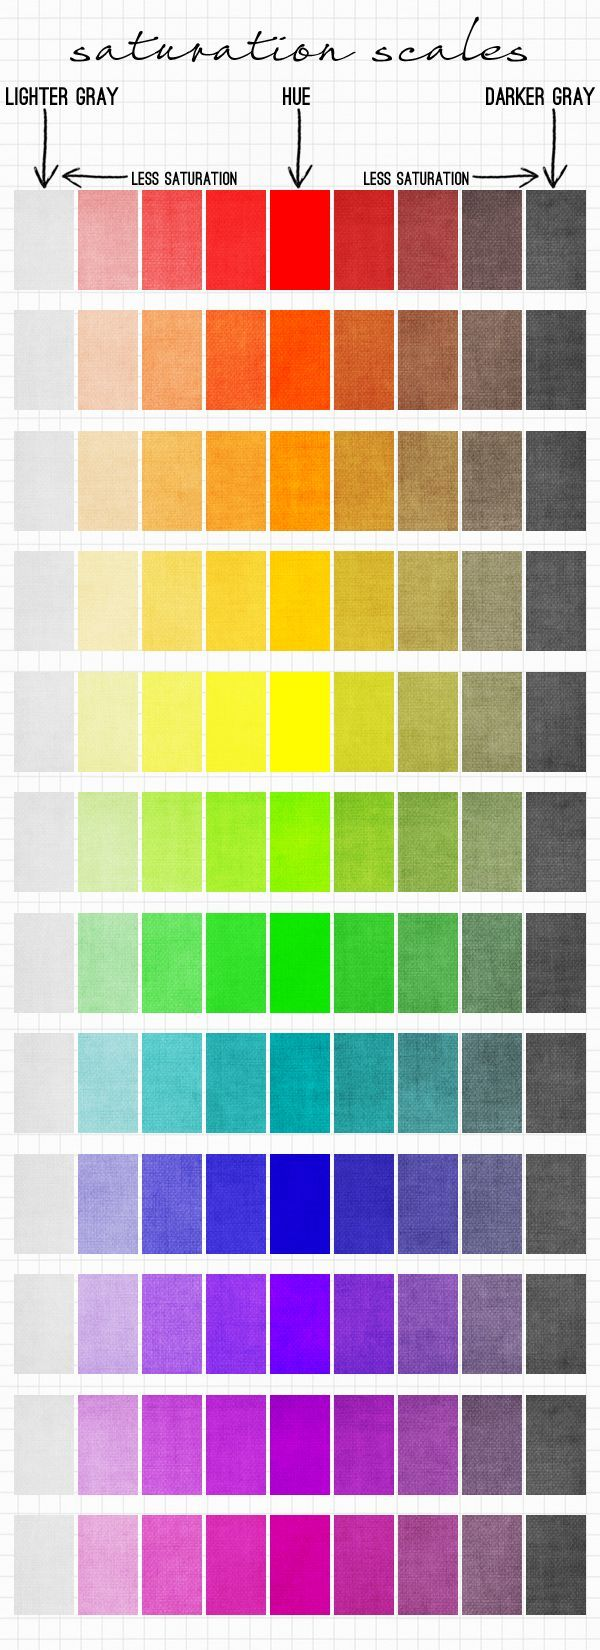 901 best Color Thesaurus, Color Wheels and Information images on ...